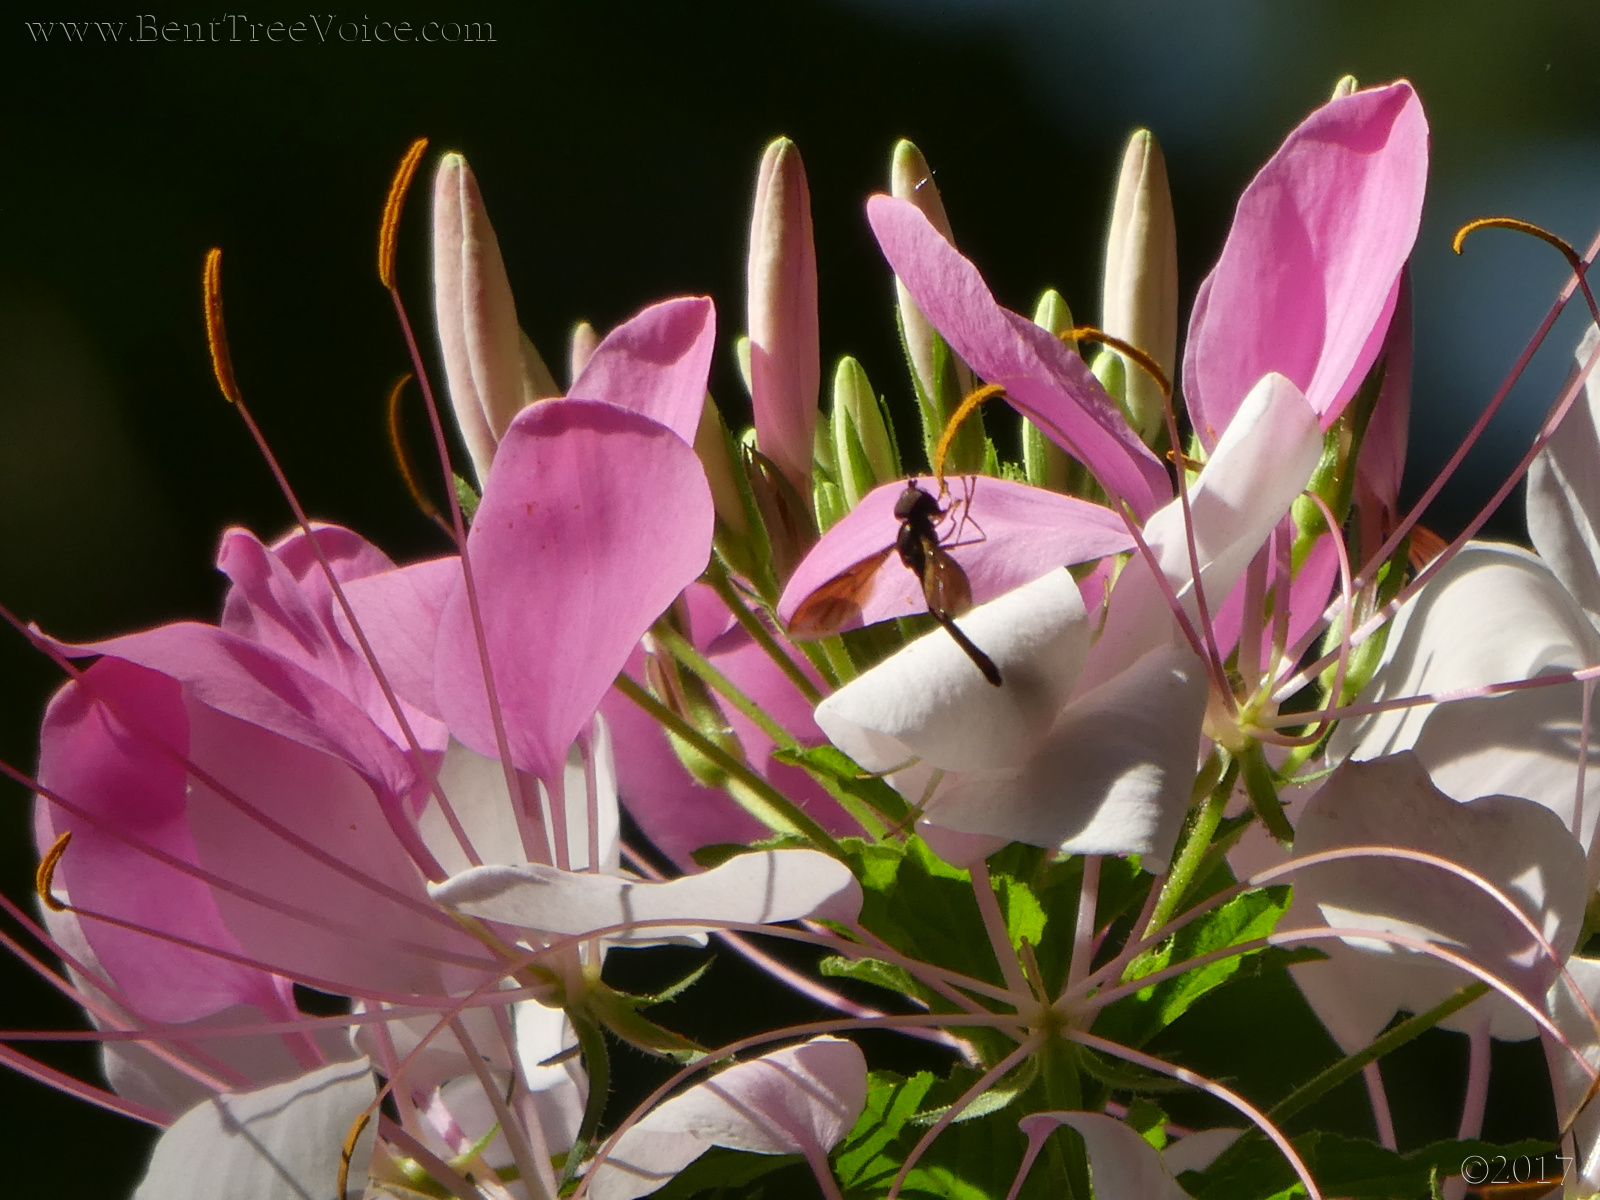 September 3, 2017 - Cleome blooming in Bent Tree